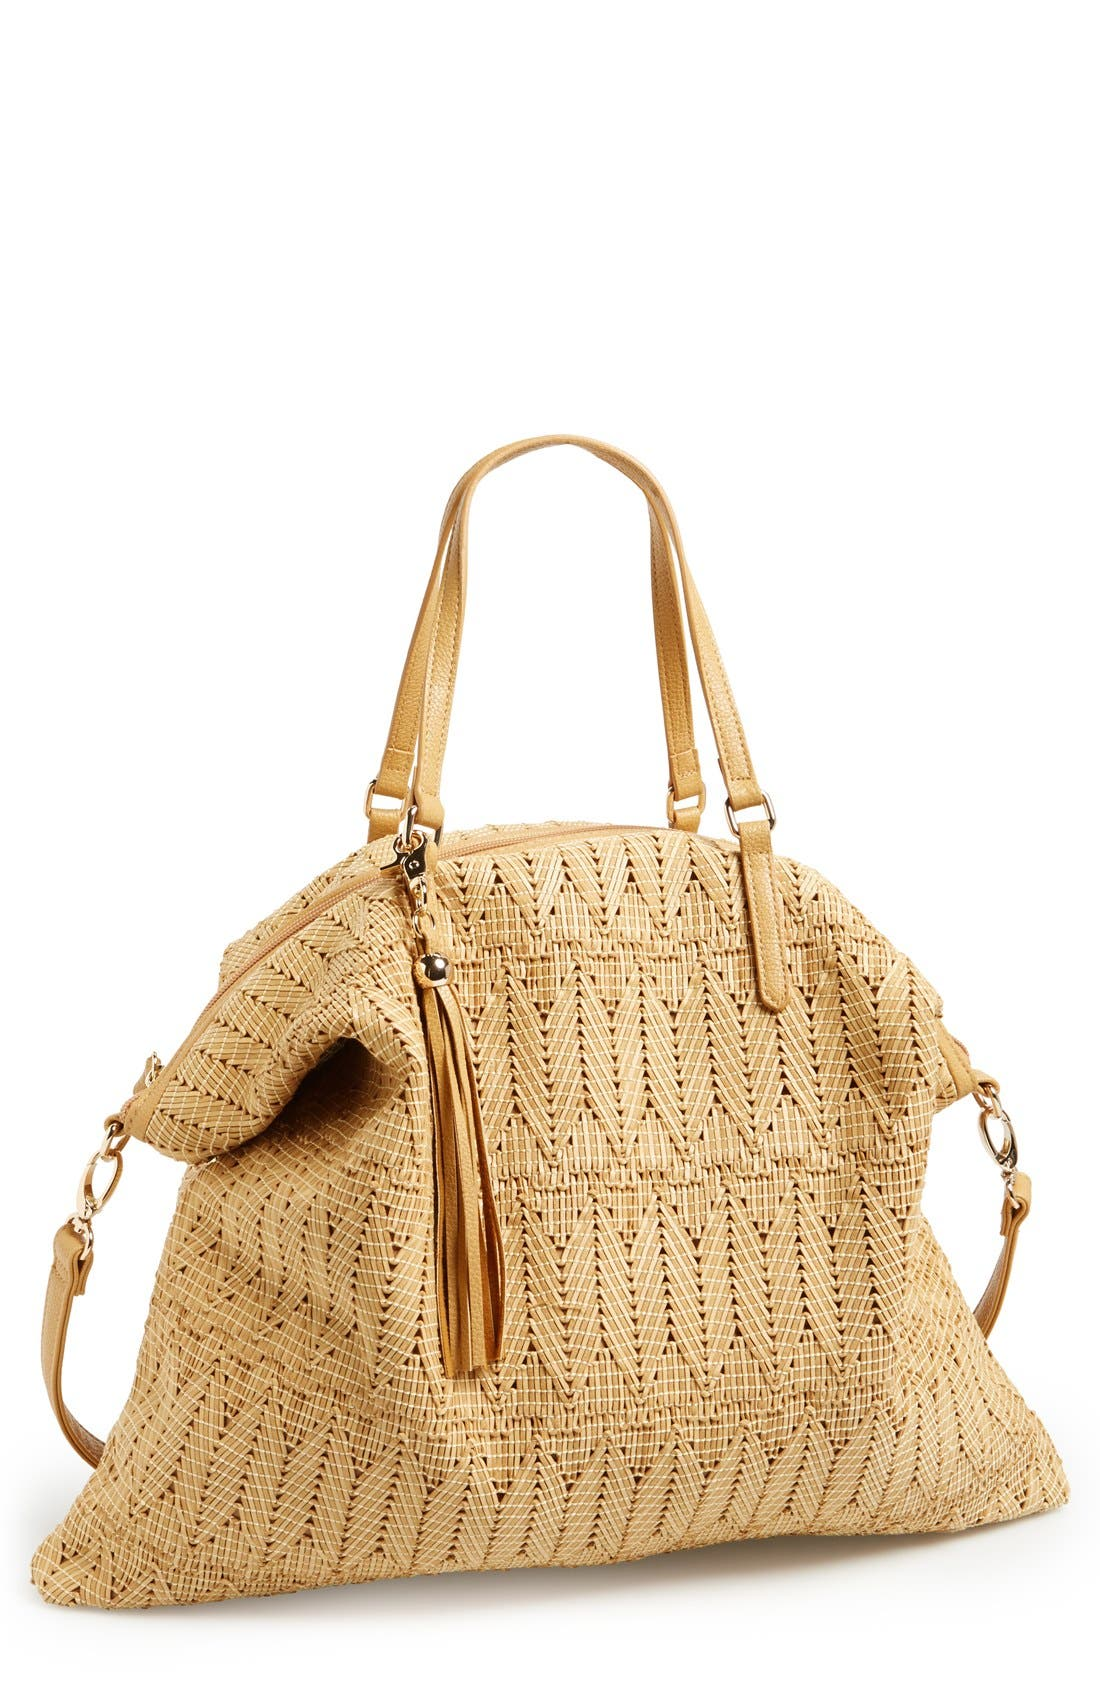 Alternate Image 1 Selected - POVERTY FLATS by rian Woven Tote